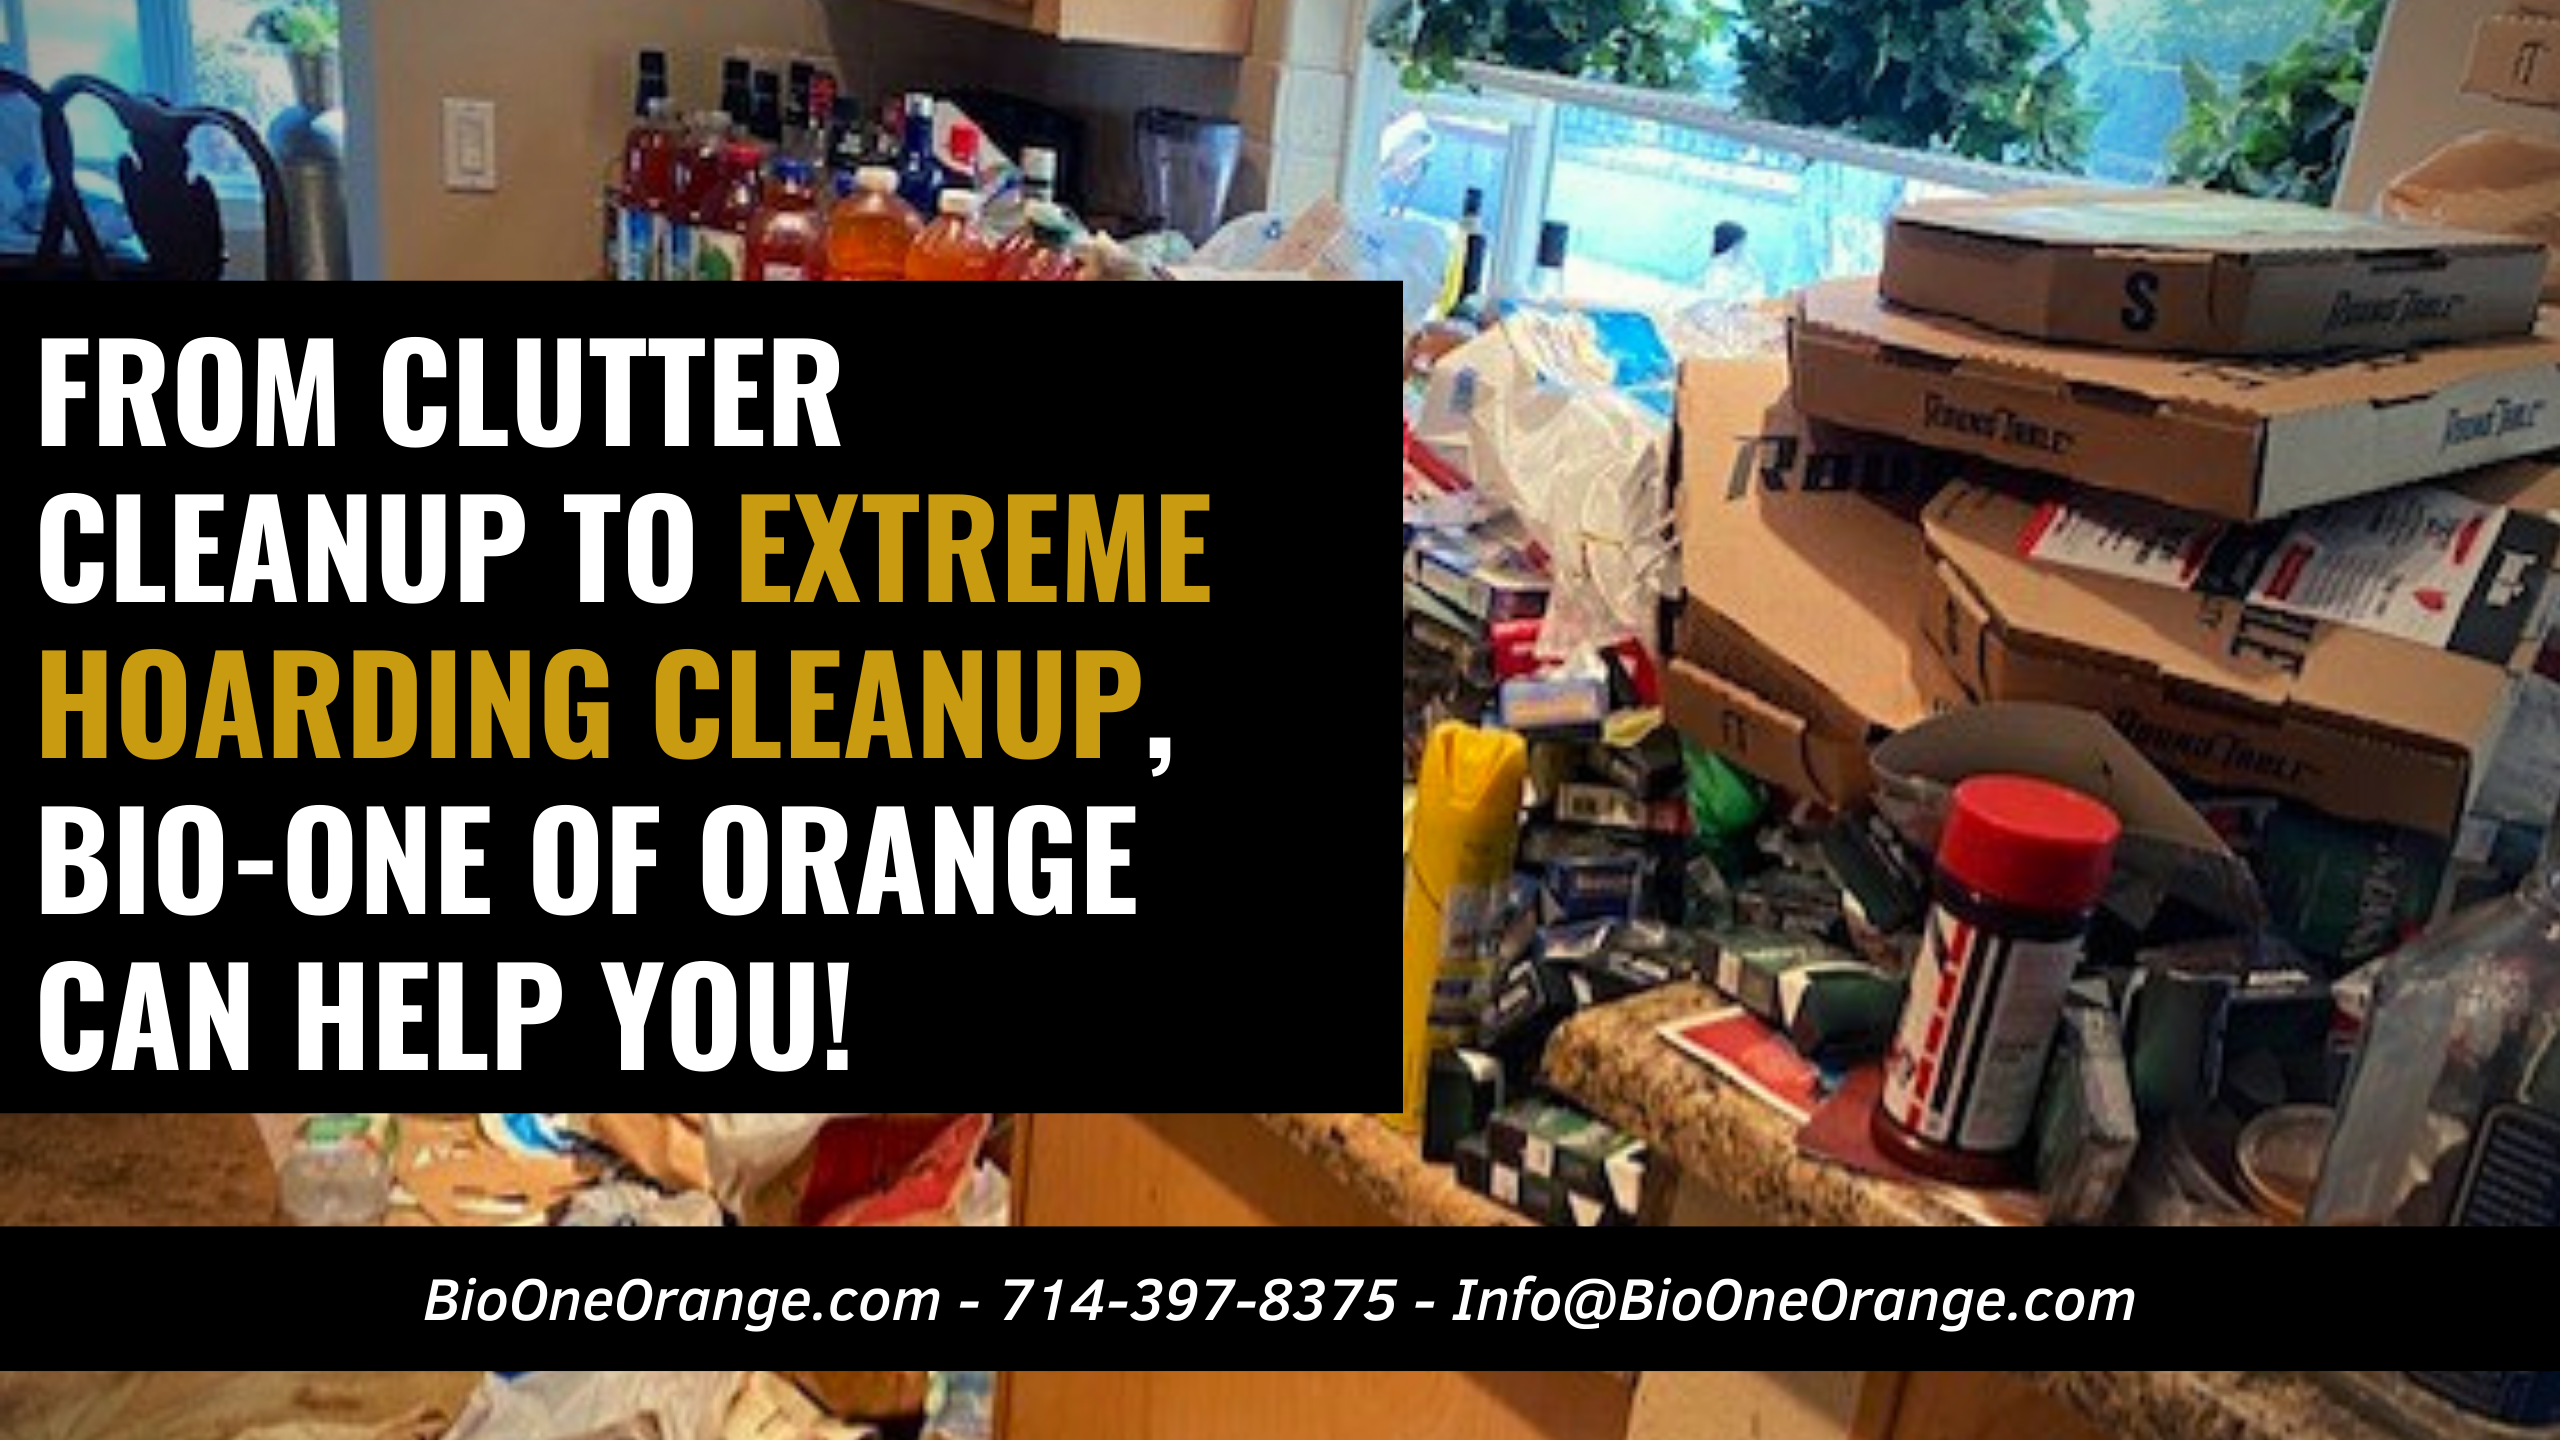 From Clutter cleanup to Extreme Hoarding cleanup, Bio-One of Orange can help you!